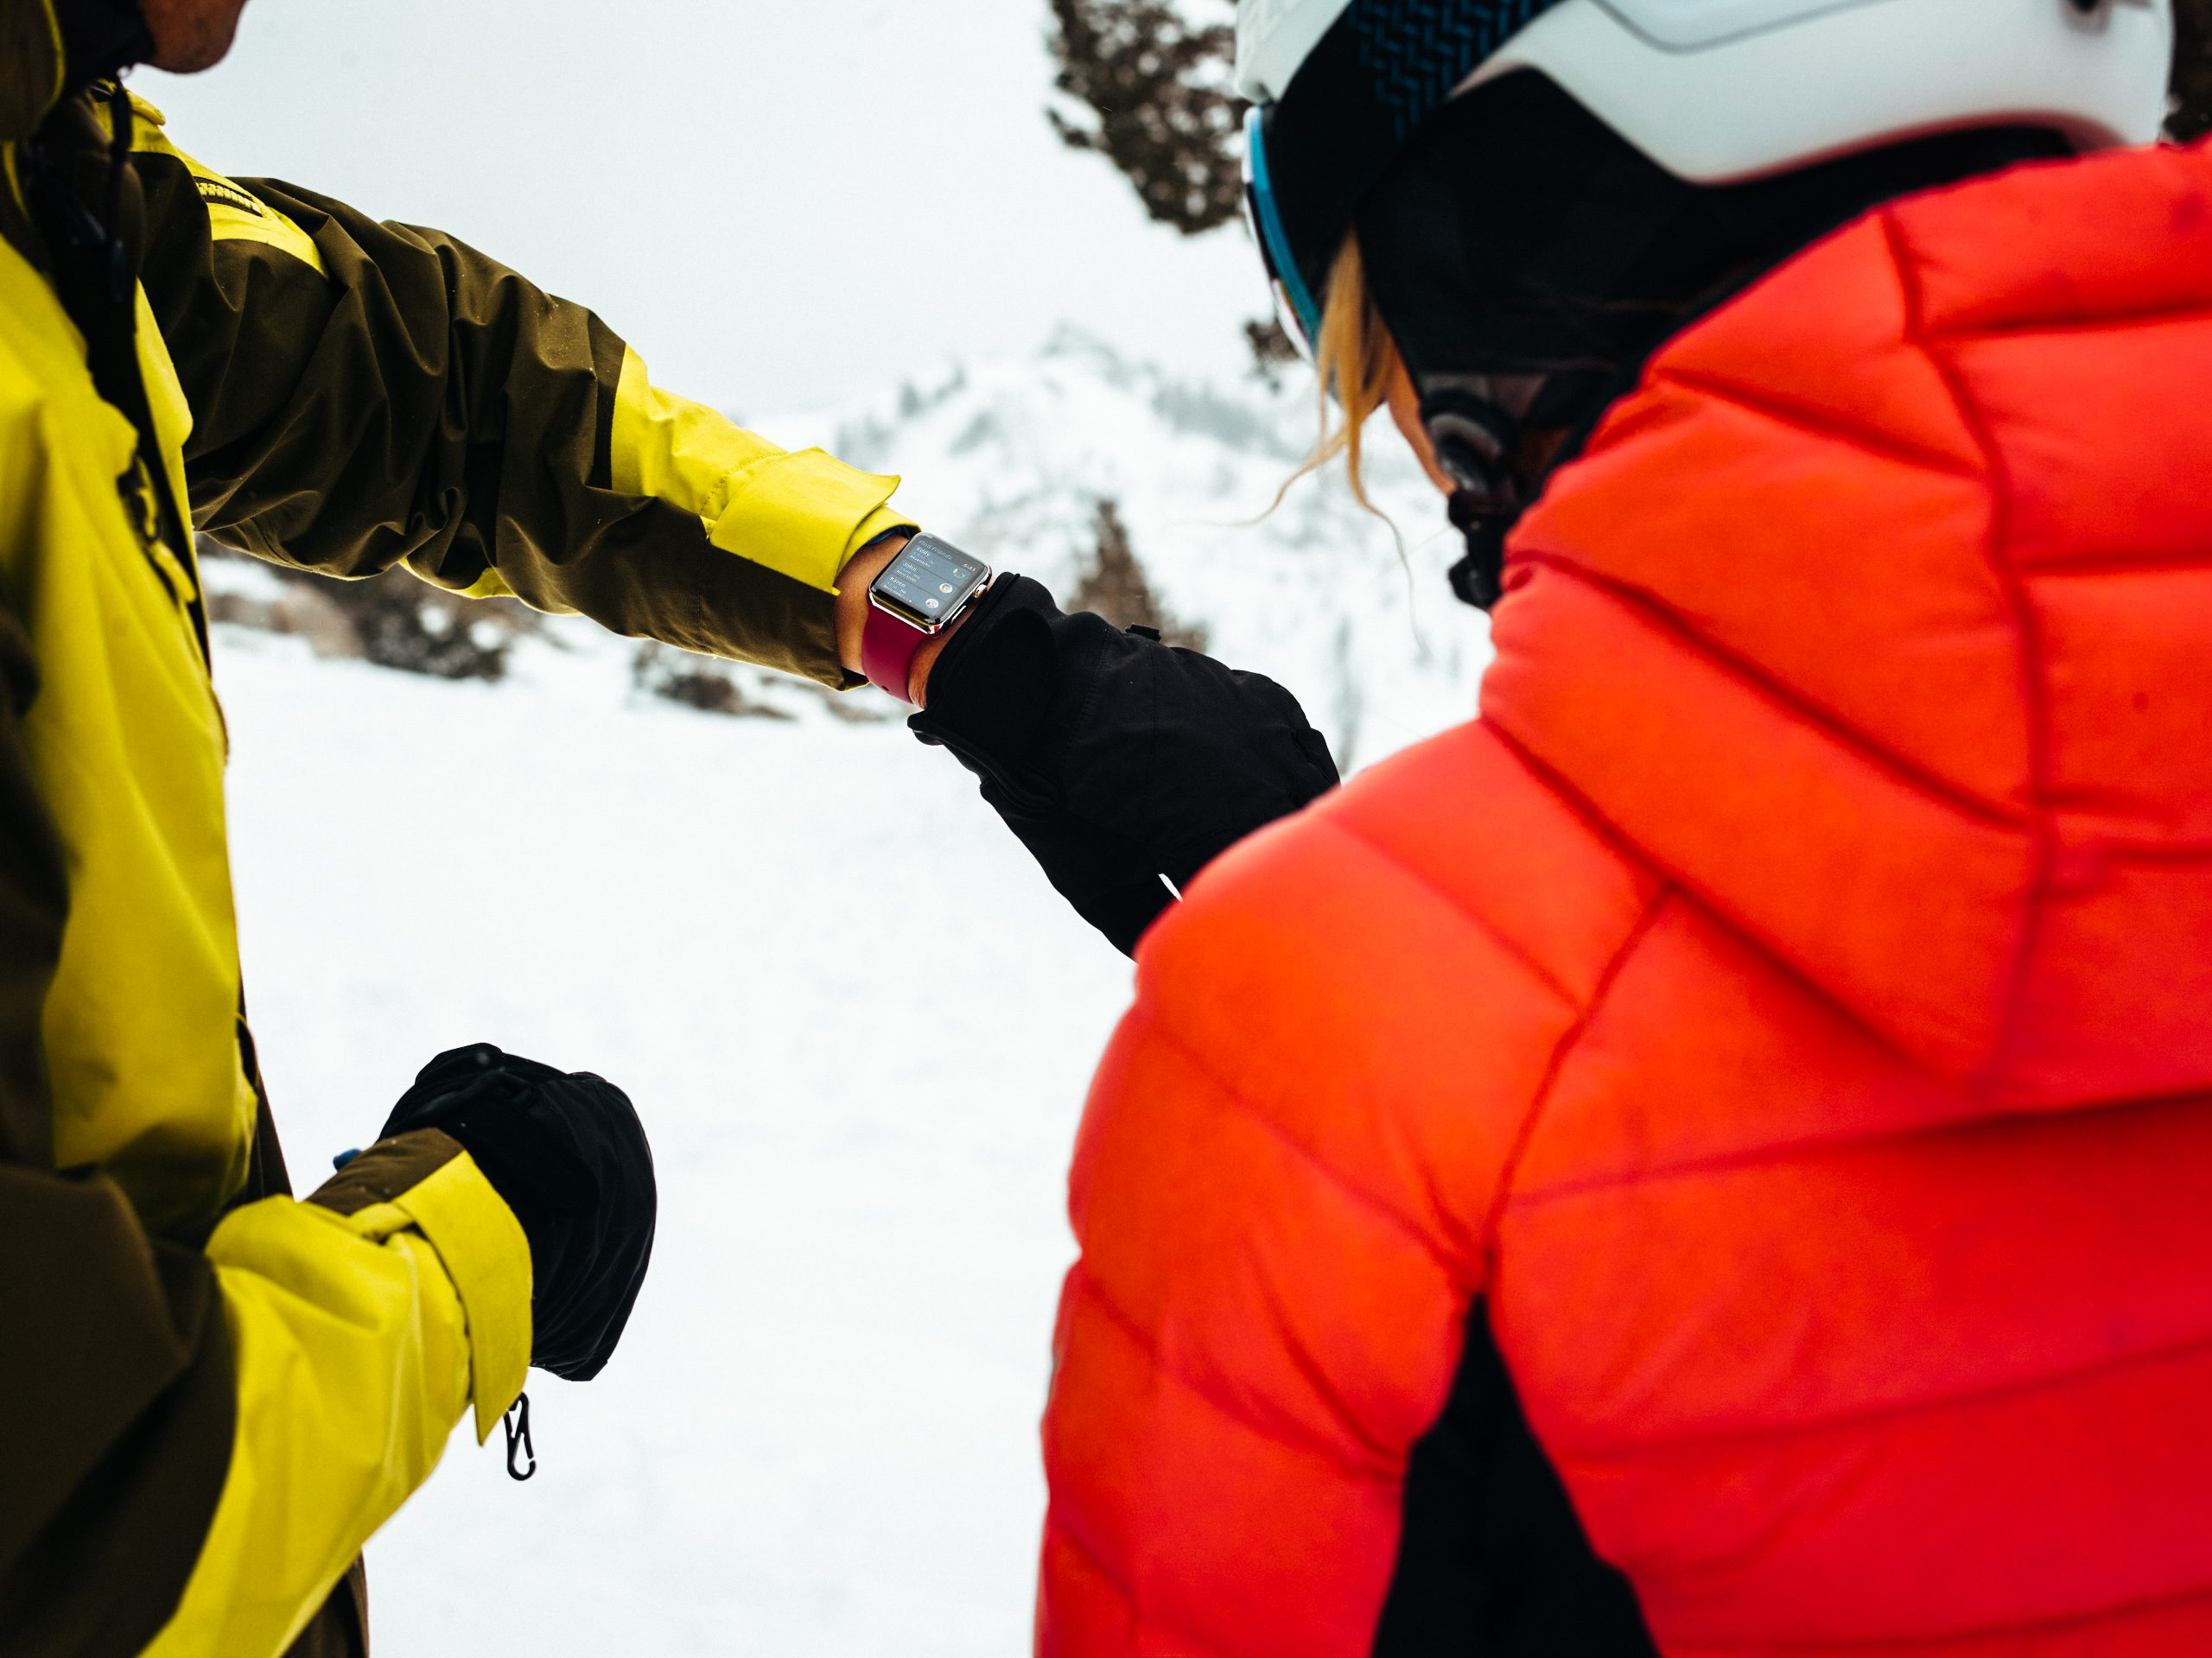 Ora l'Apple Watch registra l'attività su sci e snowboard